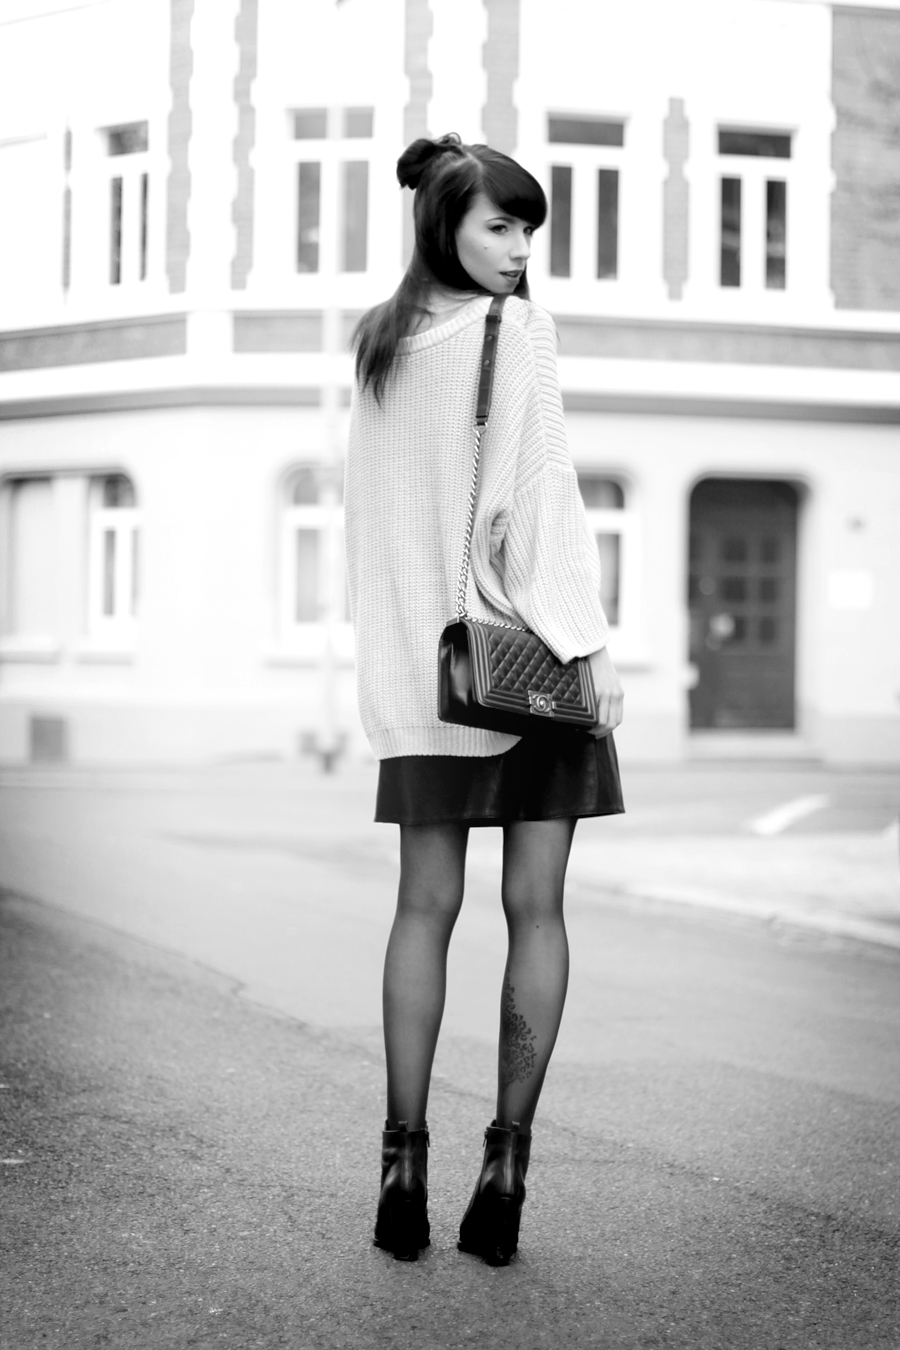 outfit black leather skirt chunky knit chanel bag heels geisha look makeup red lips black hair snow white blogger ricarda schernus hannover berlin germany fashionblogger 7